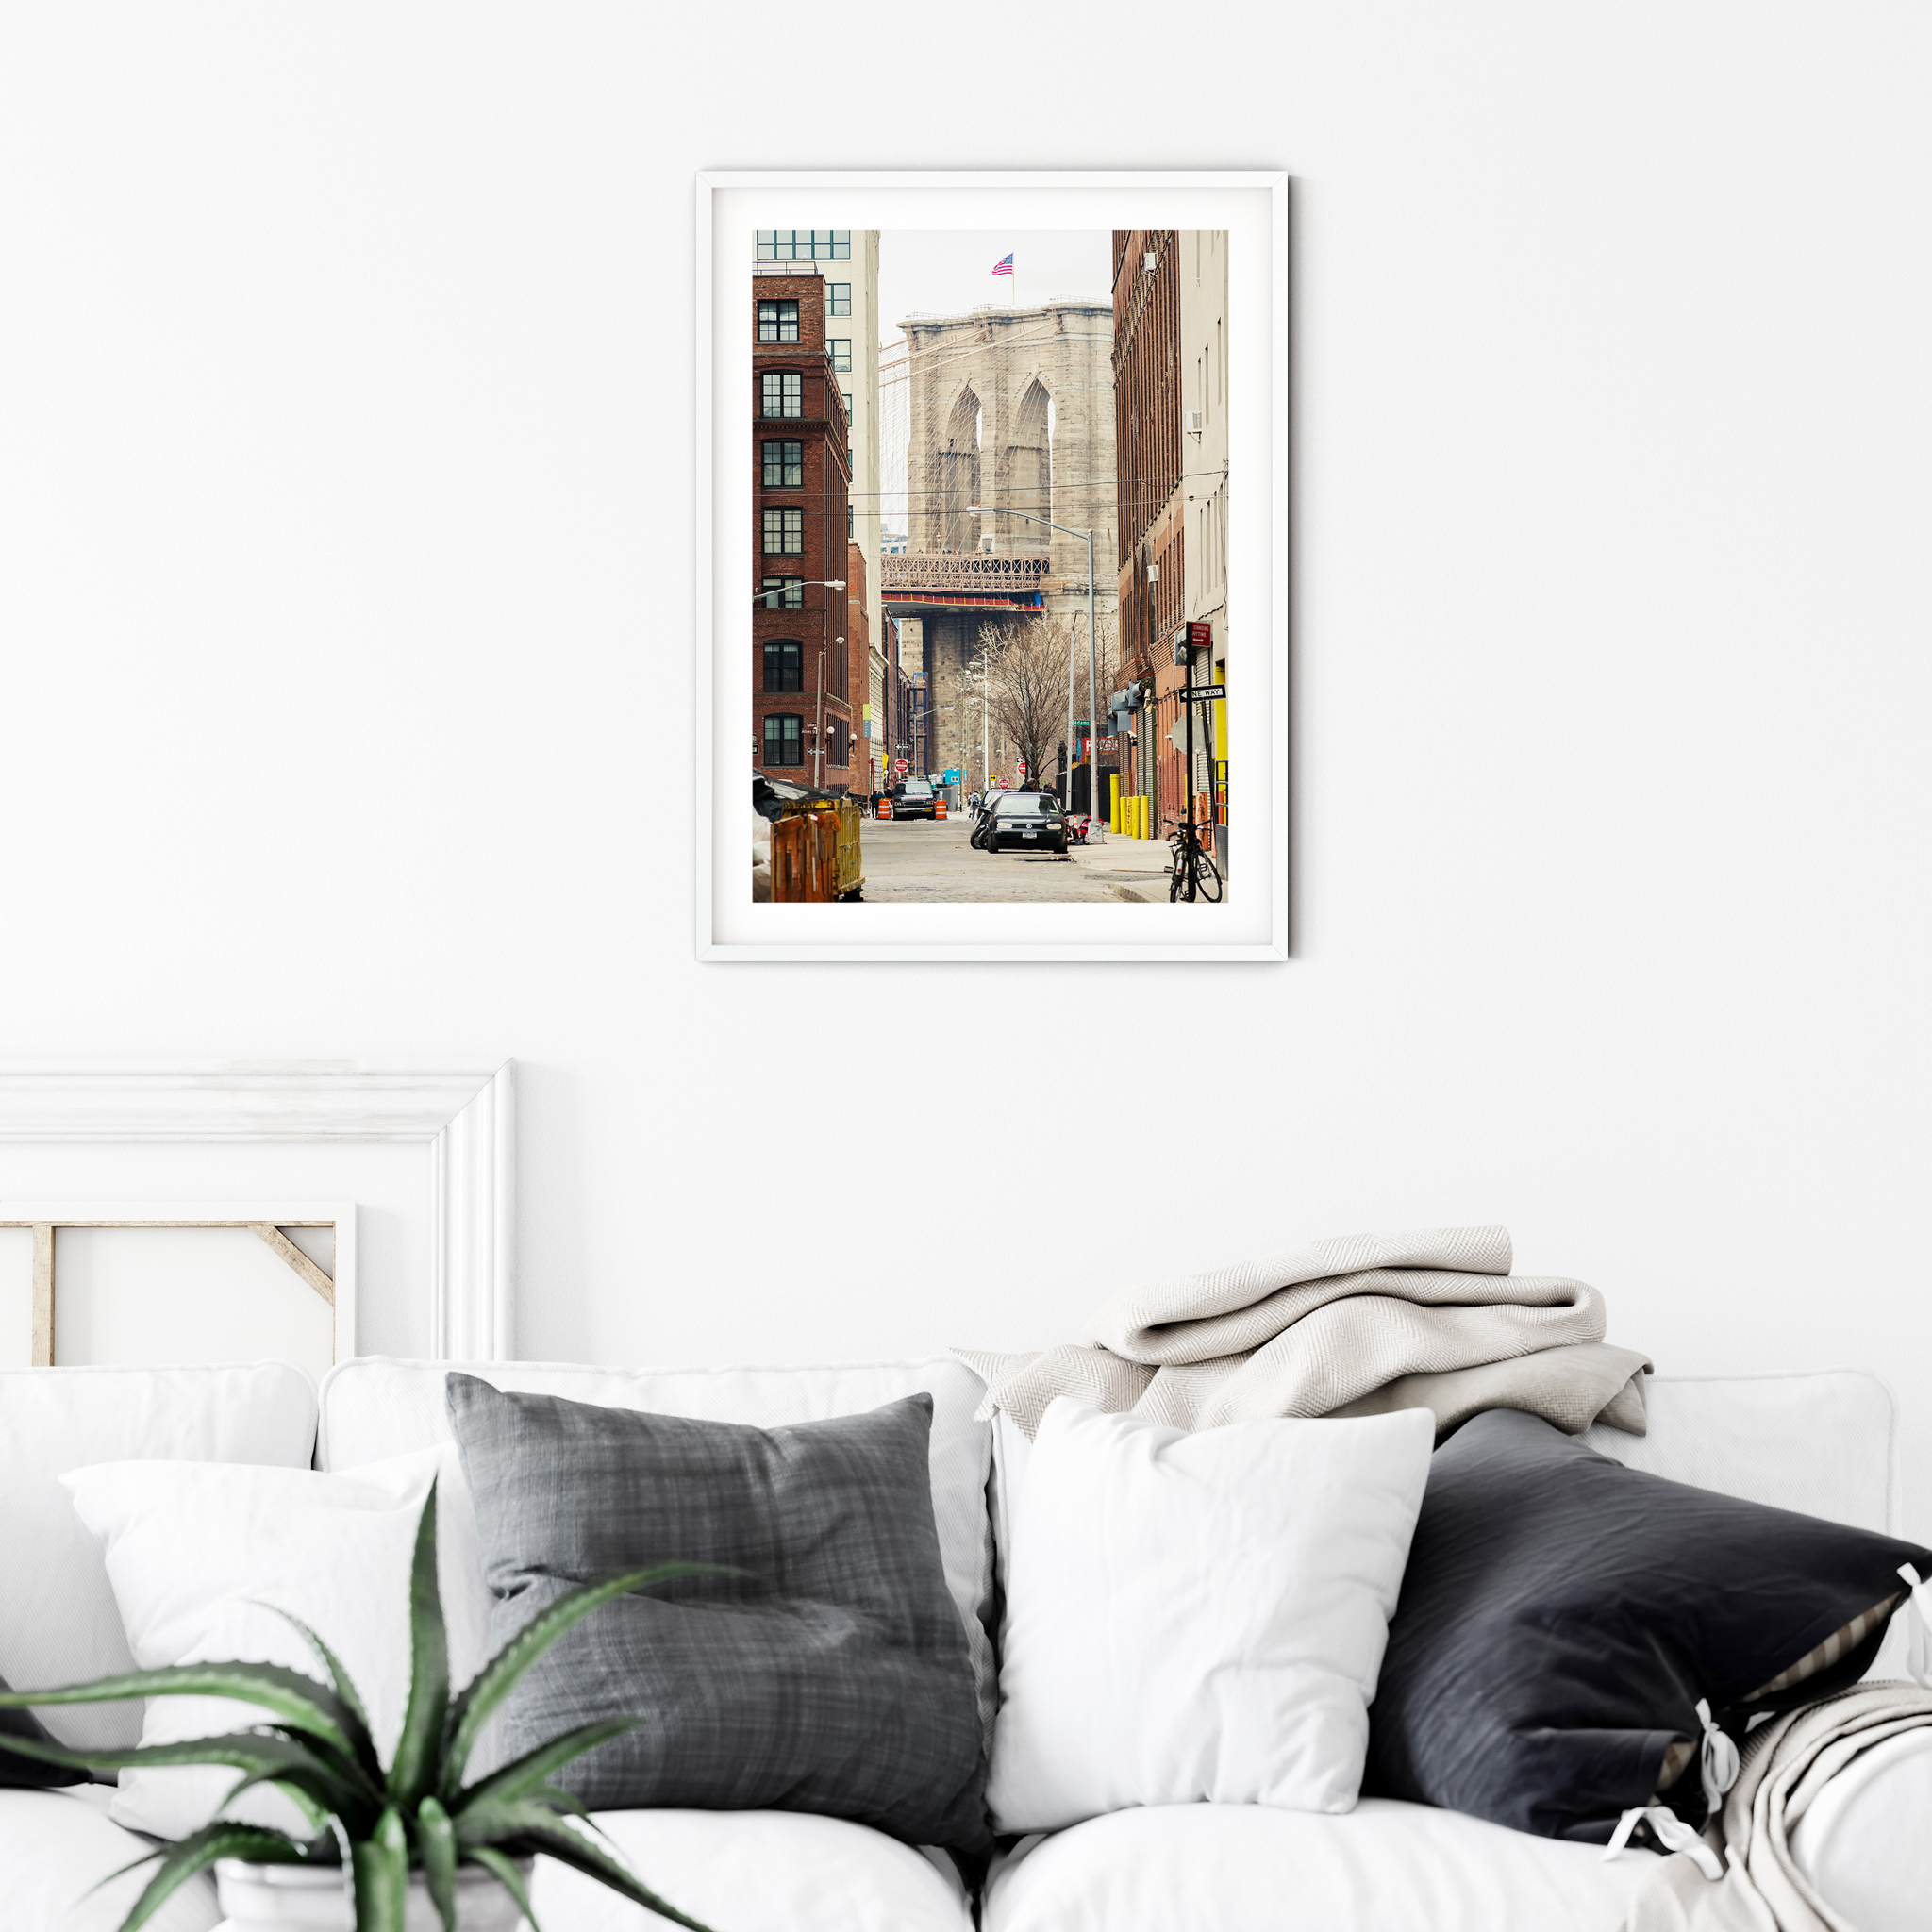 Brooklyn Bridge: View From Brooklyn photography - print with white border in white frame on the wall